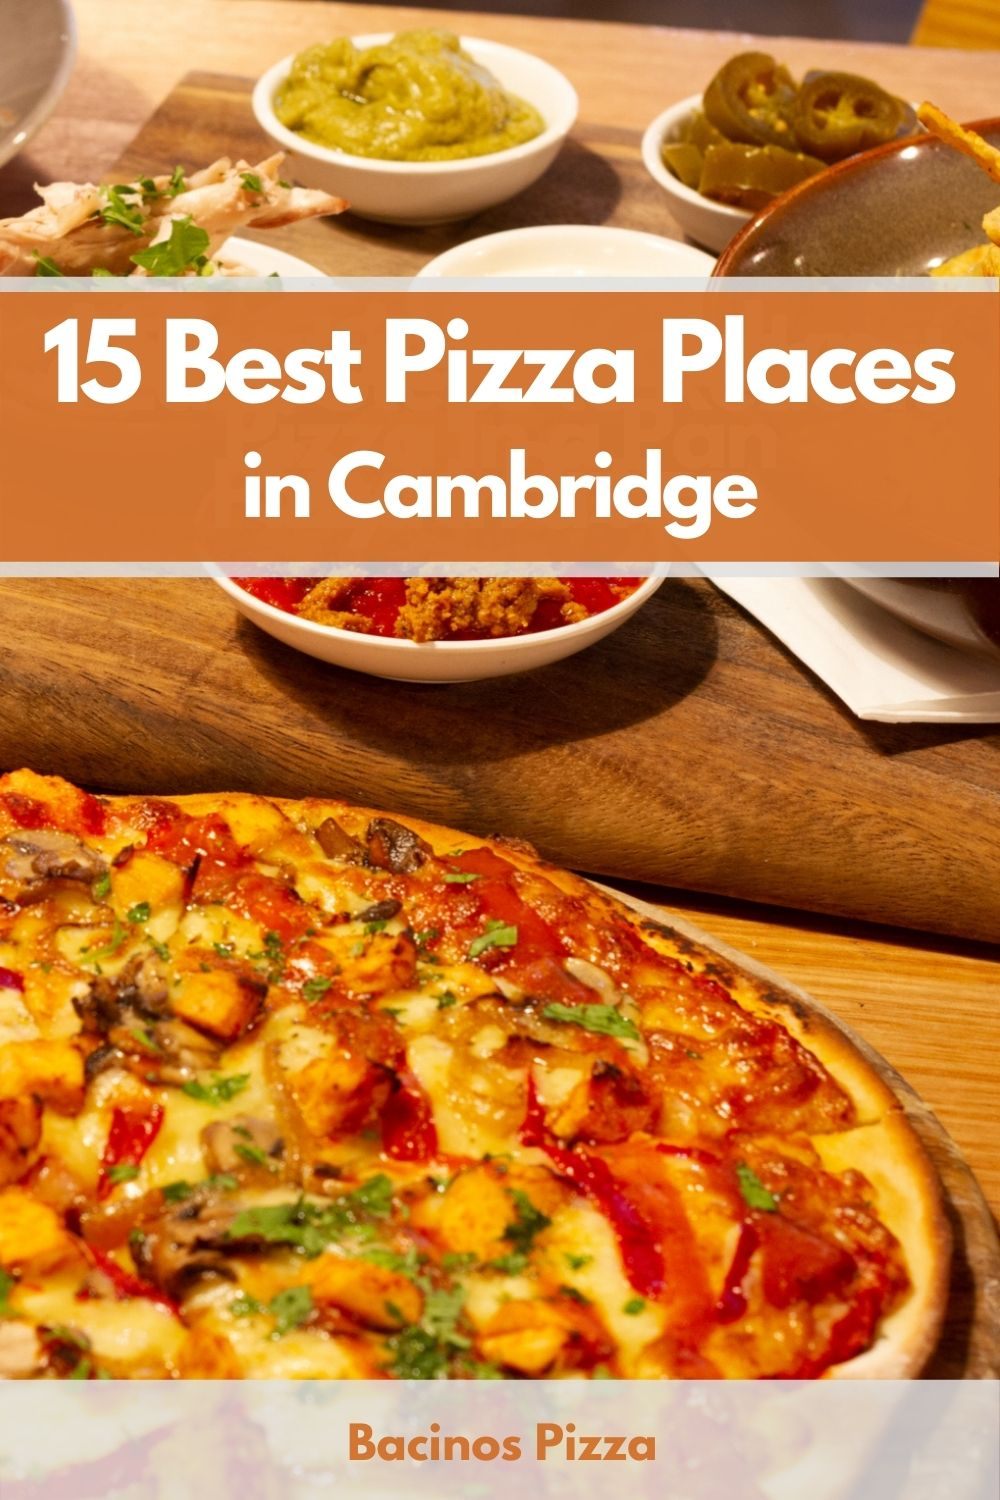 15 Best Pizza Places in Cambridge pin 2